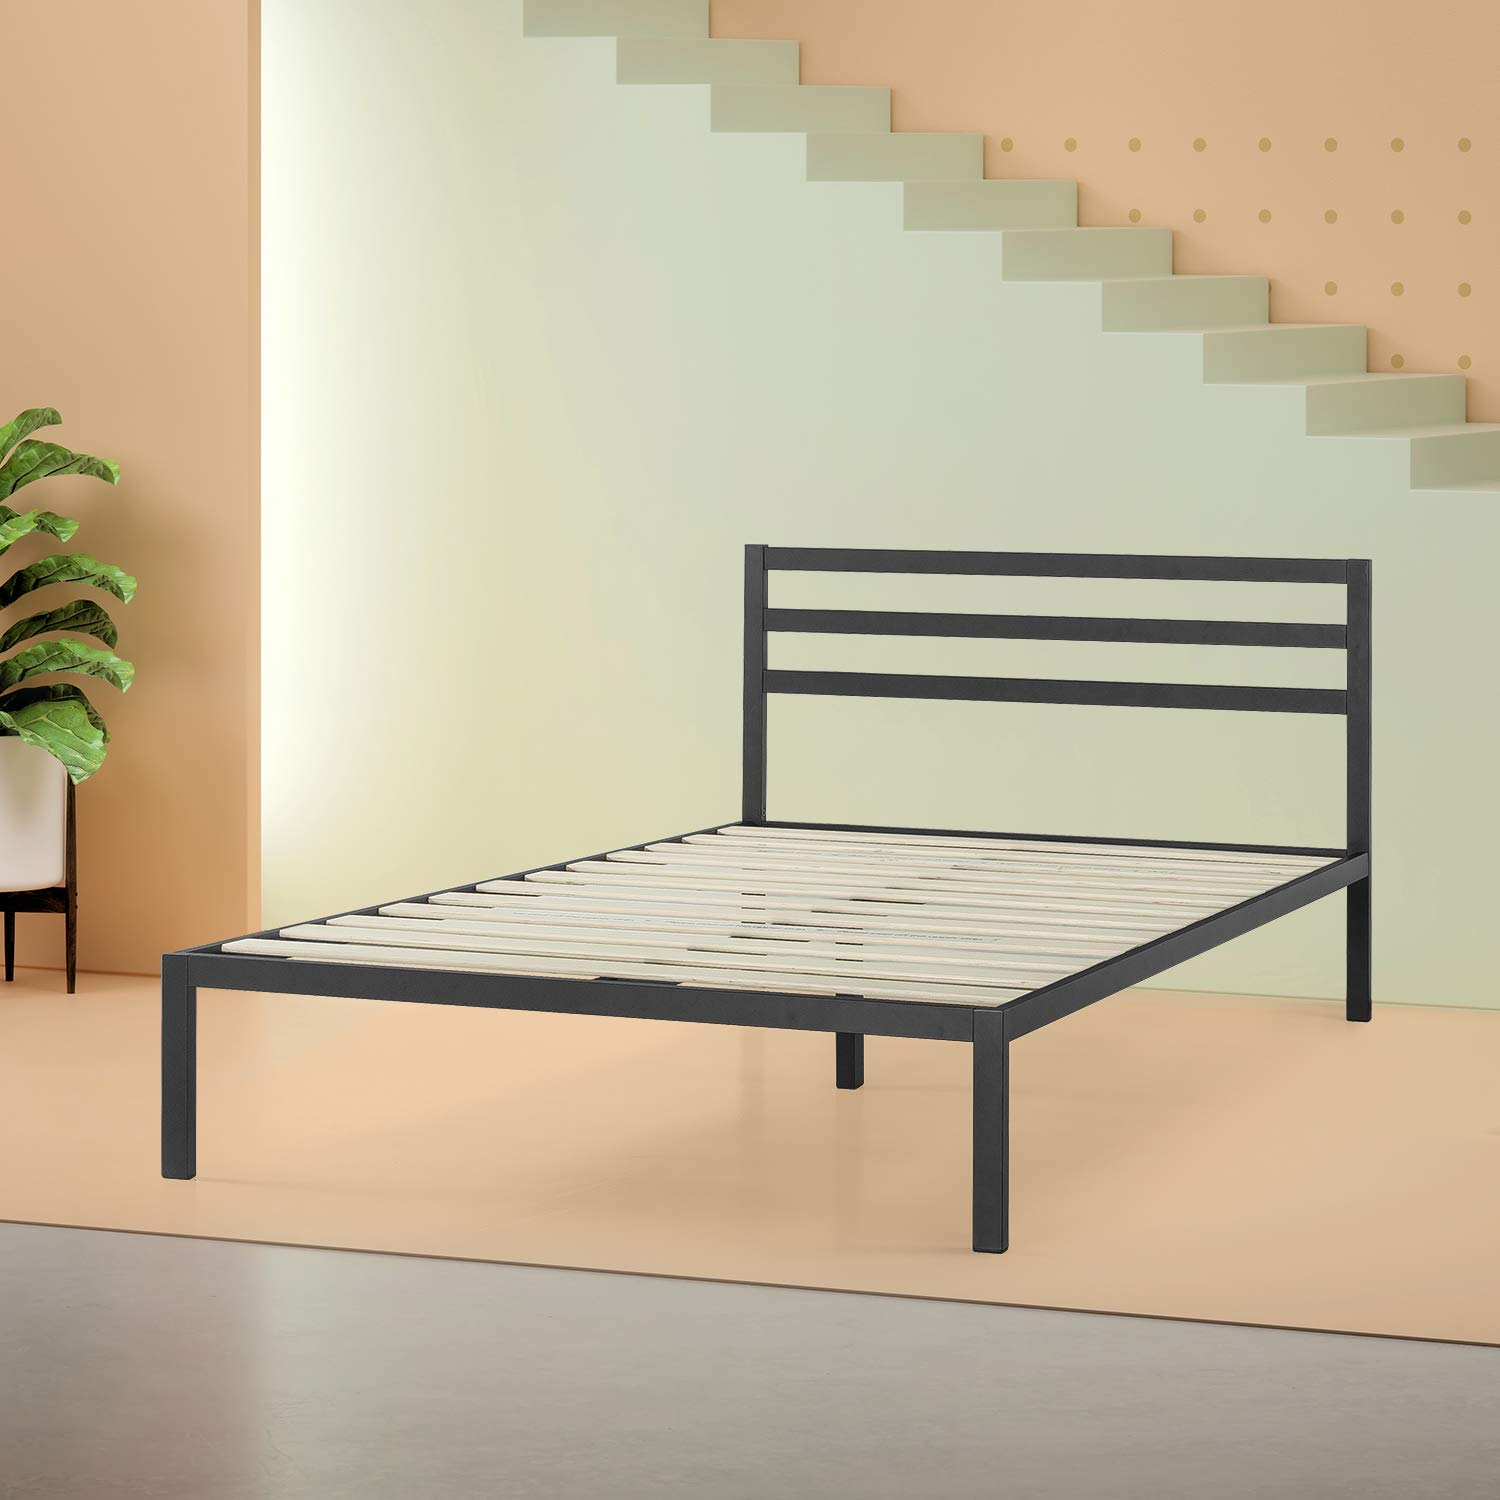 Zinus Mia Modern Studio 14 Inch Platform 1500H Metal Bed Frame / Mattress Foundation / Wooden Slat Support / With Headboard, Full (Renewed) by Zinus